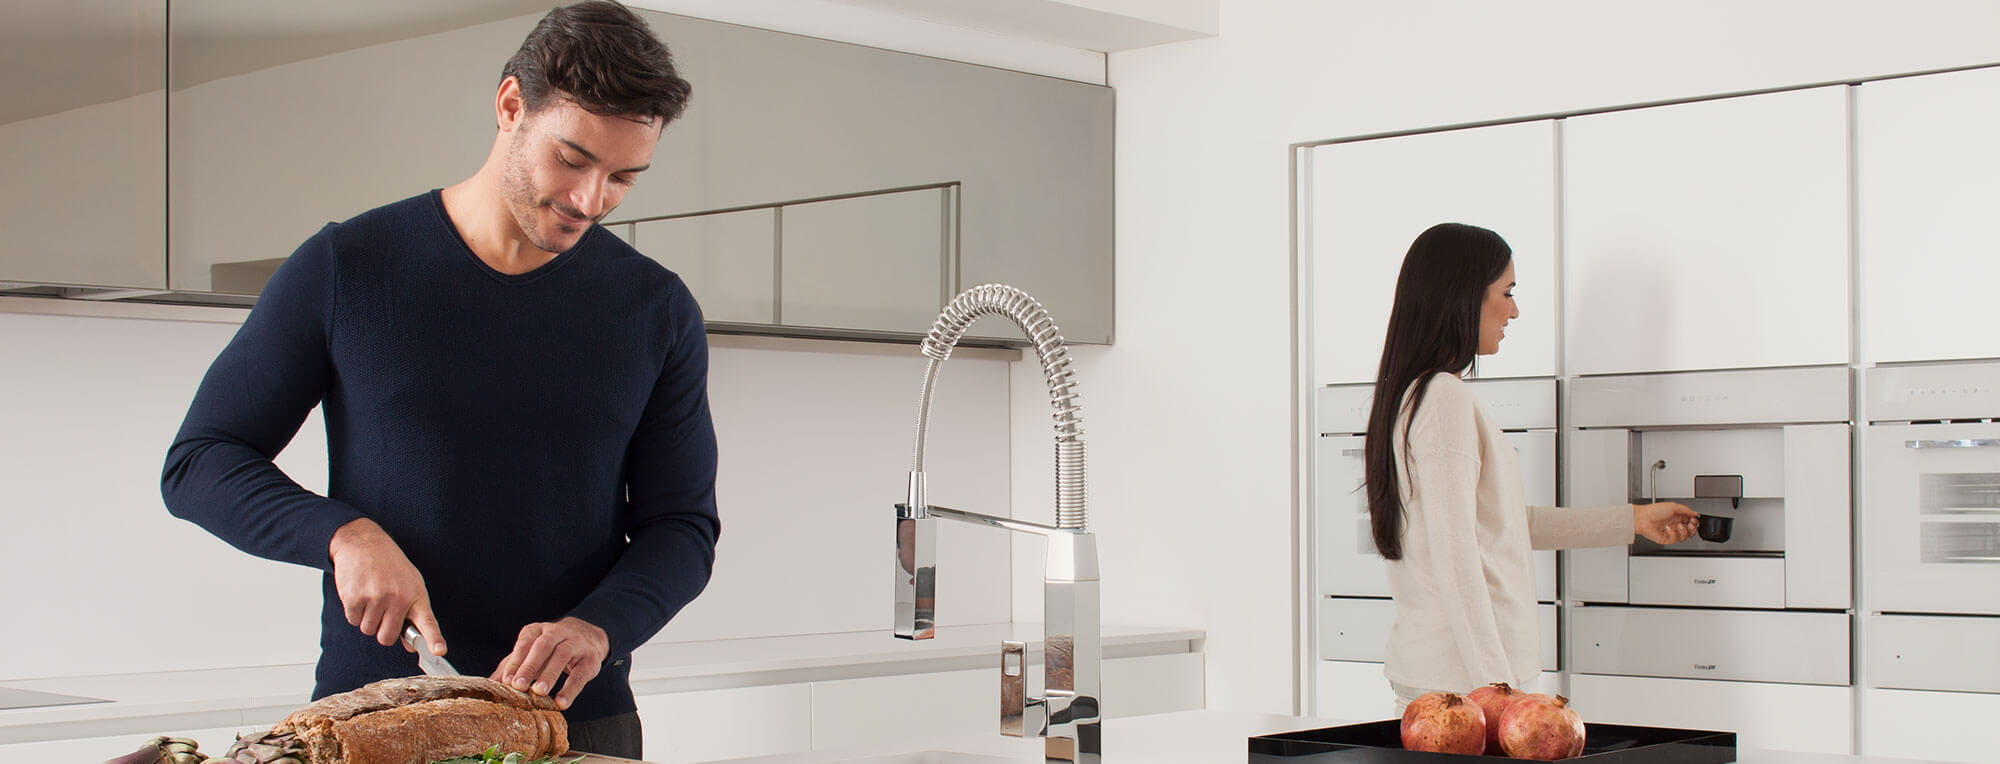 Eurocube kitchen faucet displayed in a kitchen with a women and man using it.